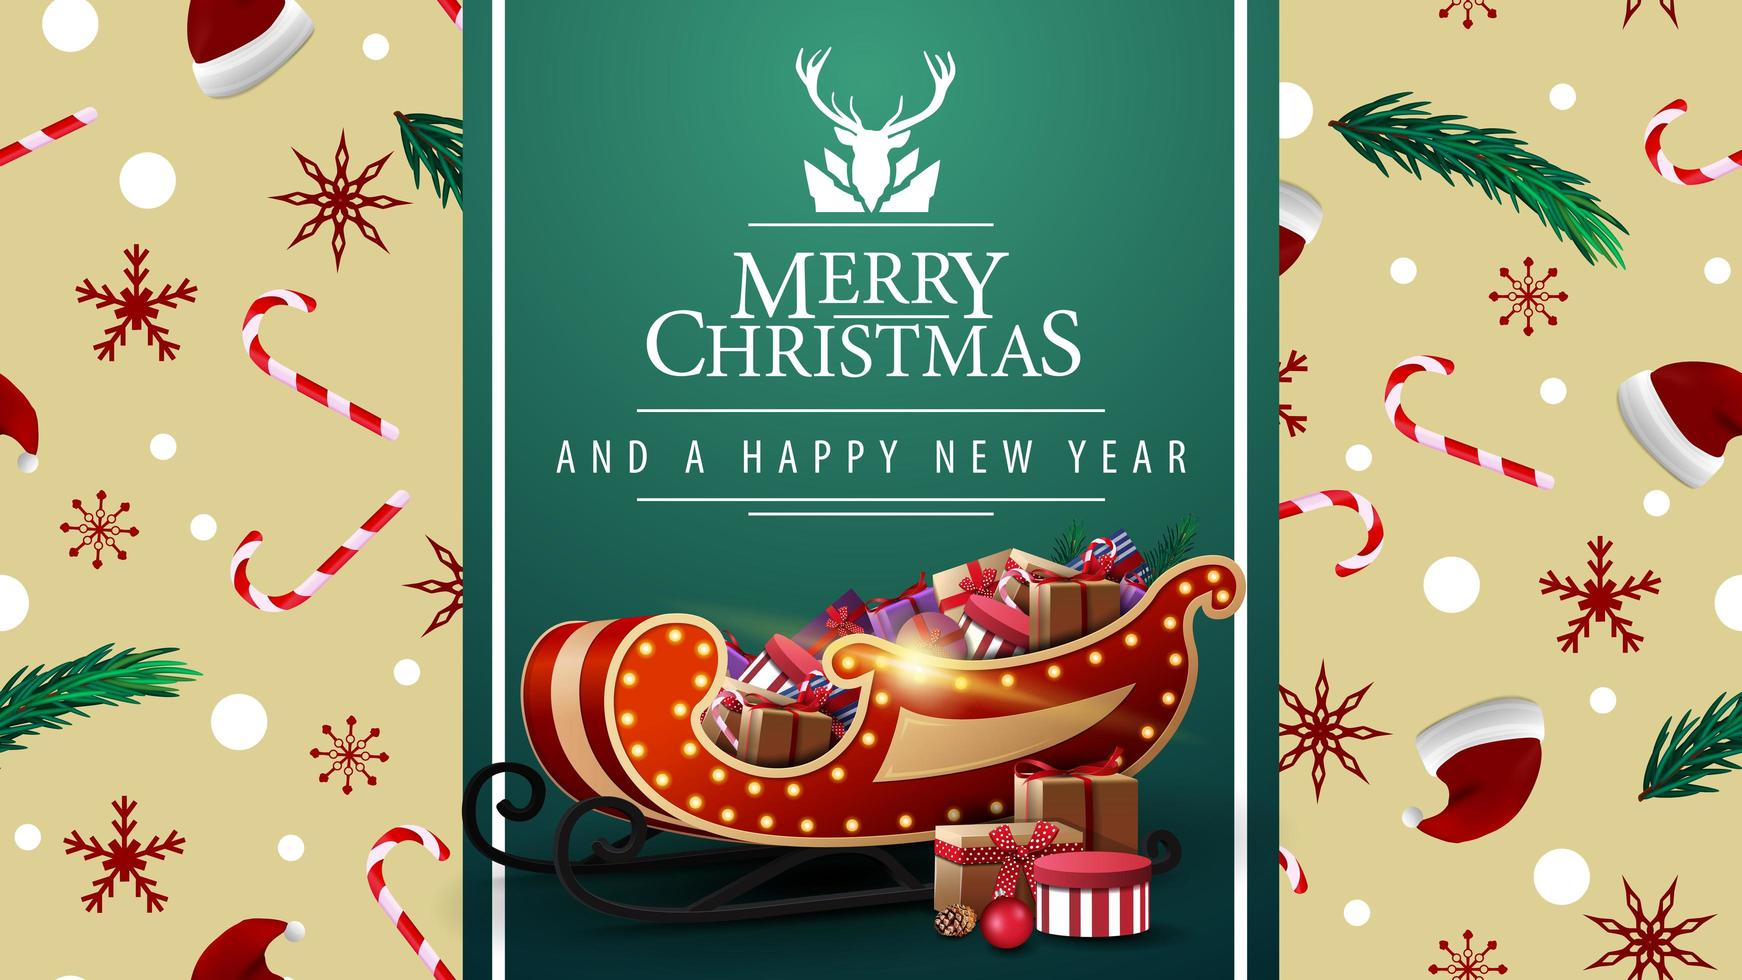 Merry Christmas and happy New Year, beautiful postcard with green vertical ribbon, Christmas texture on background and Santa Sleigh with presents vector